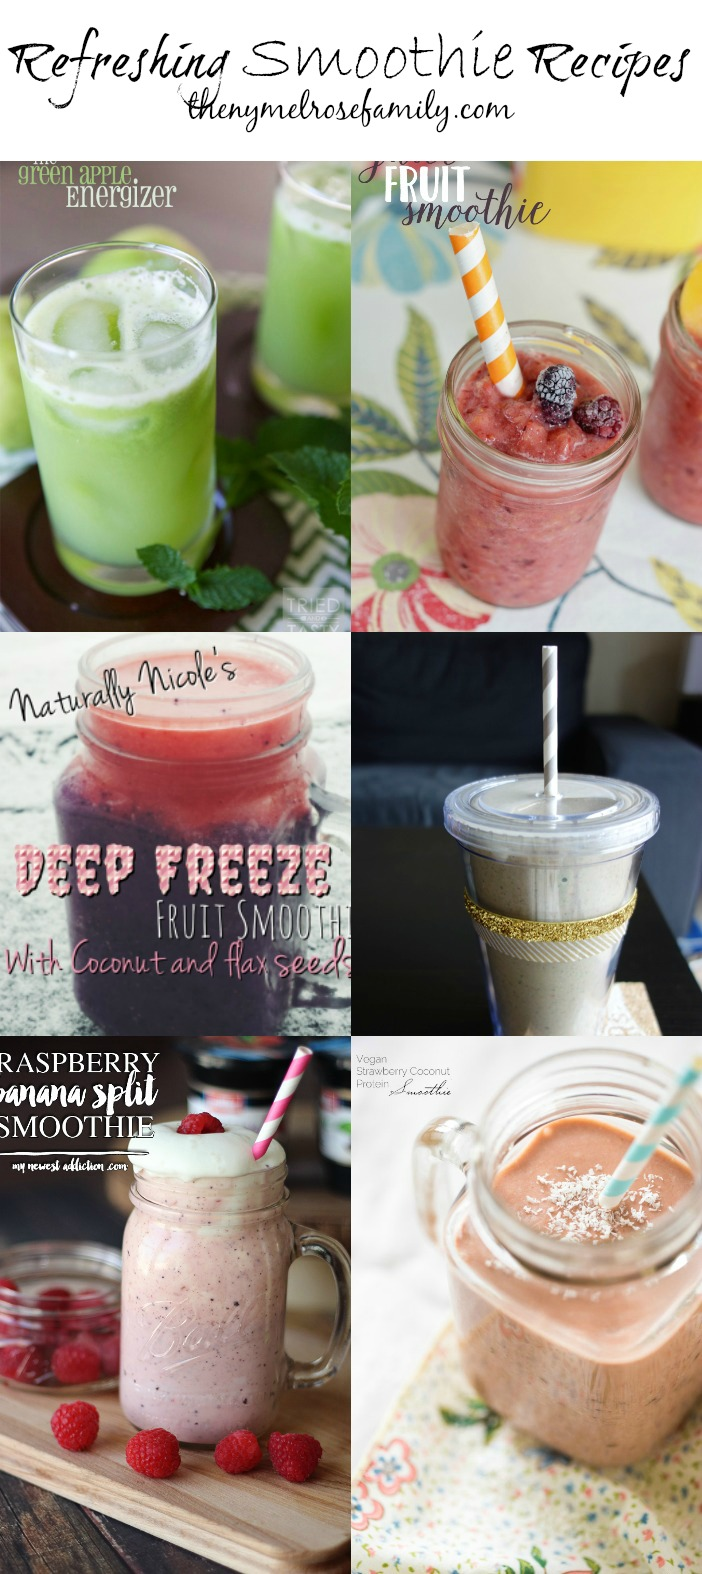 Refreshing Smoothie Recipes collected by The NY Melrose Family